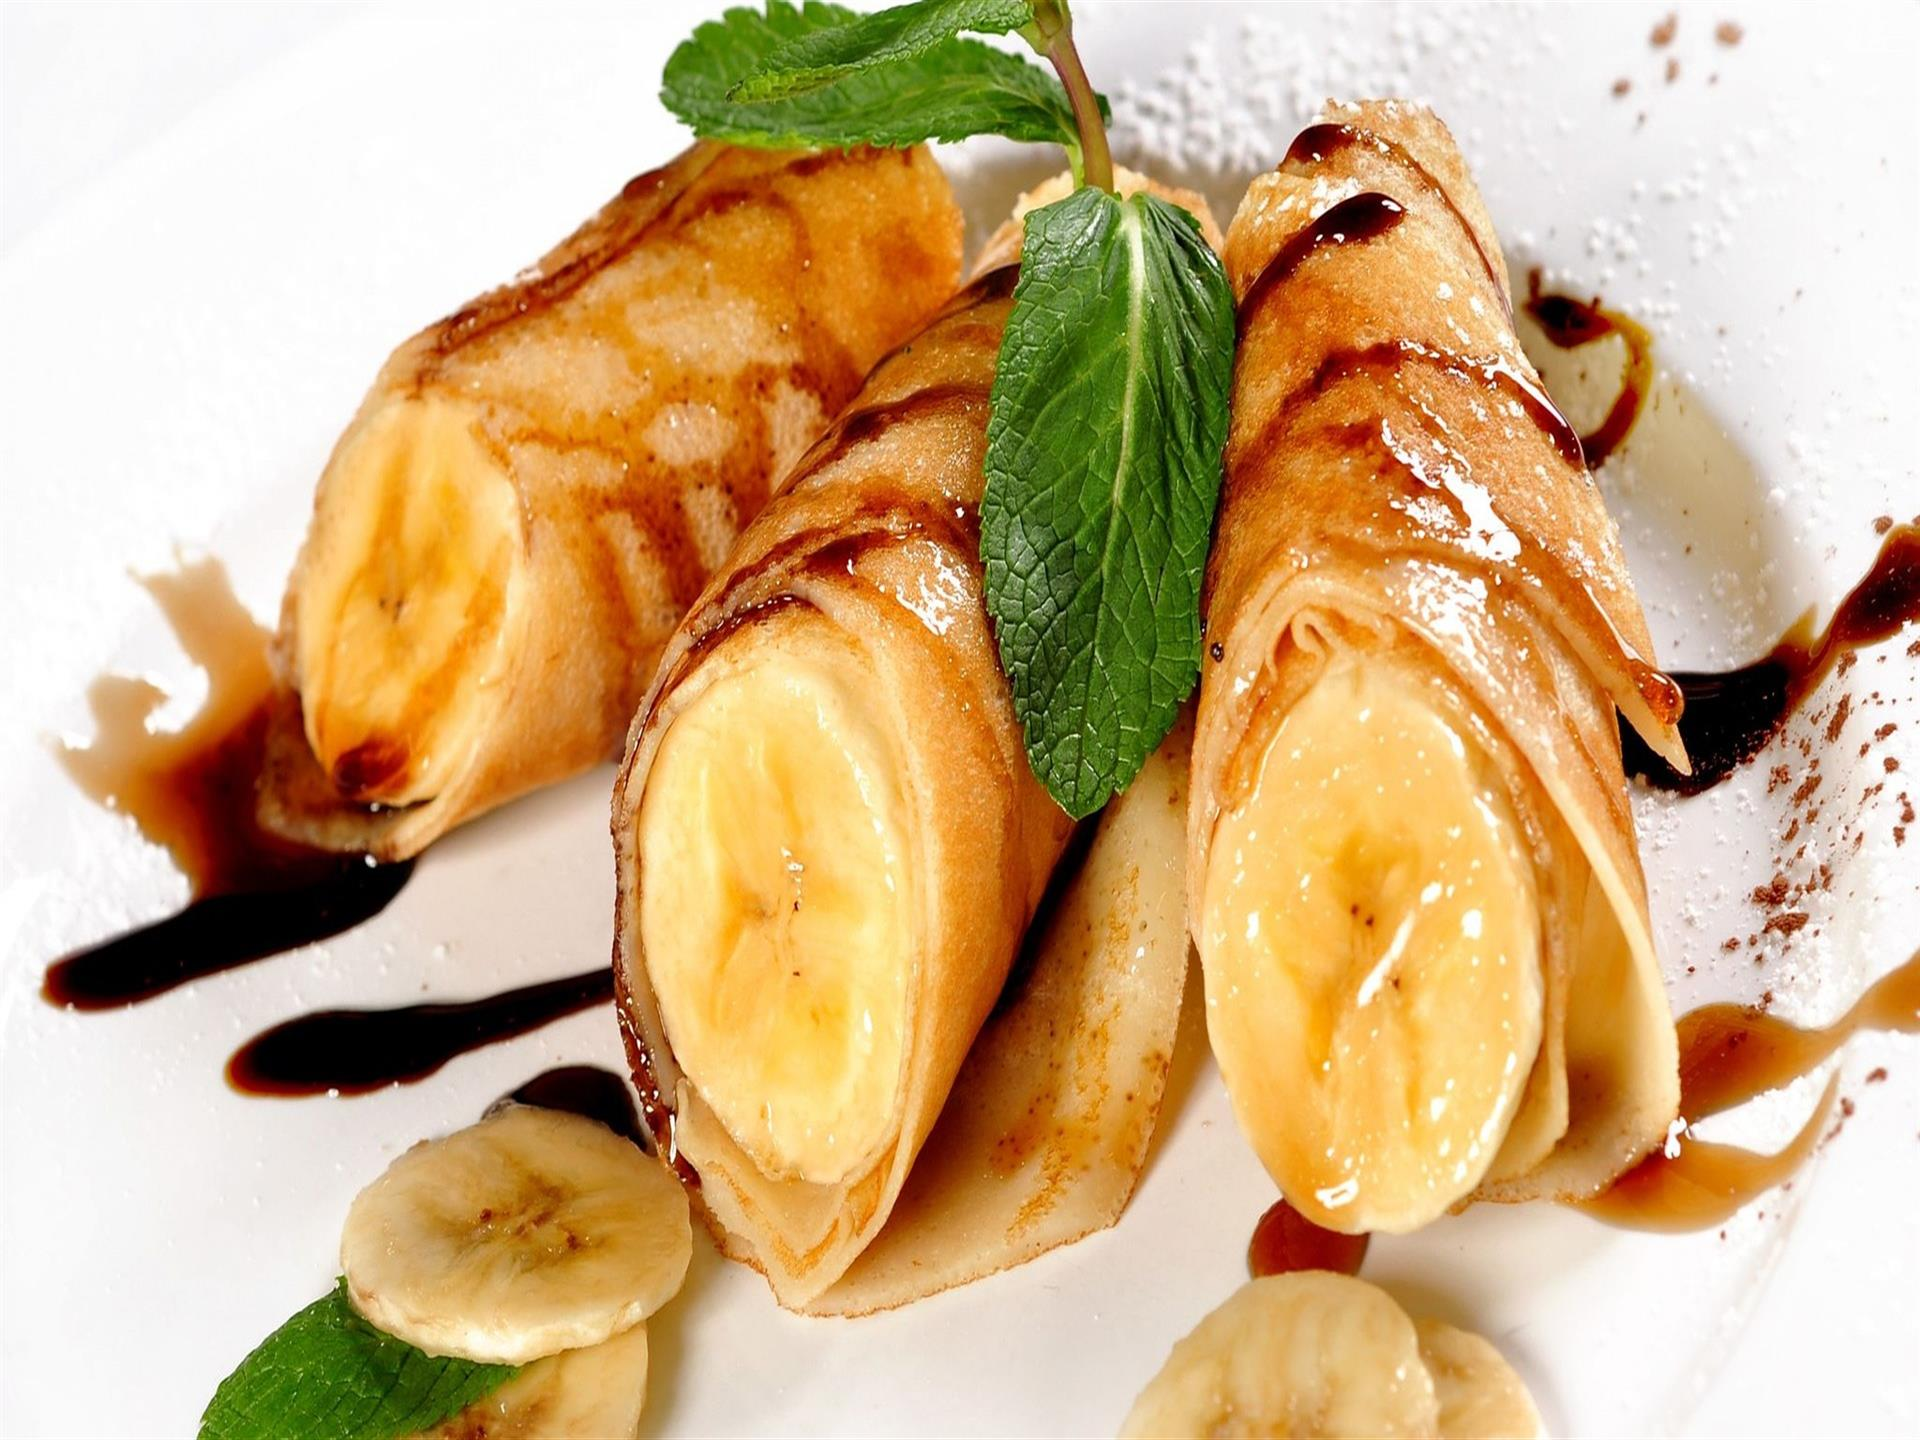 bannana crepe drizzled in sauce